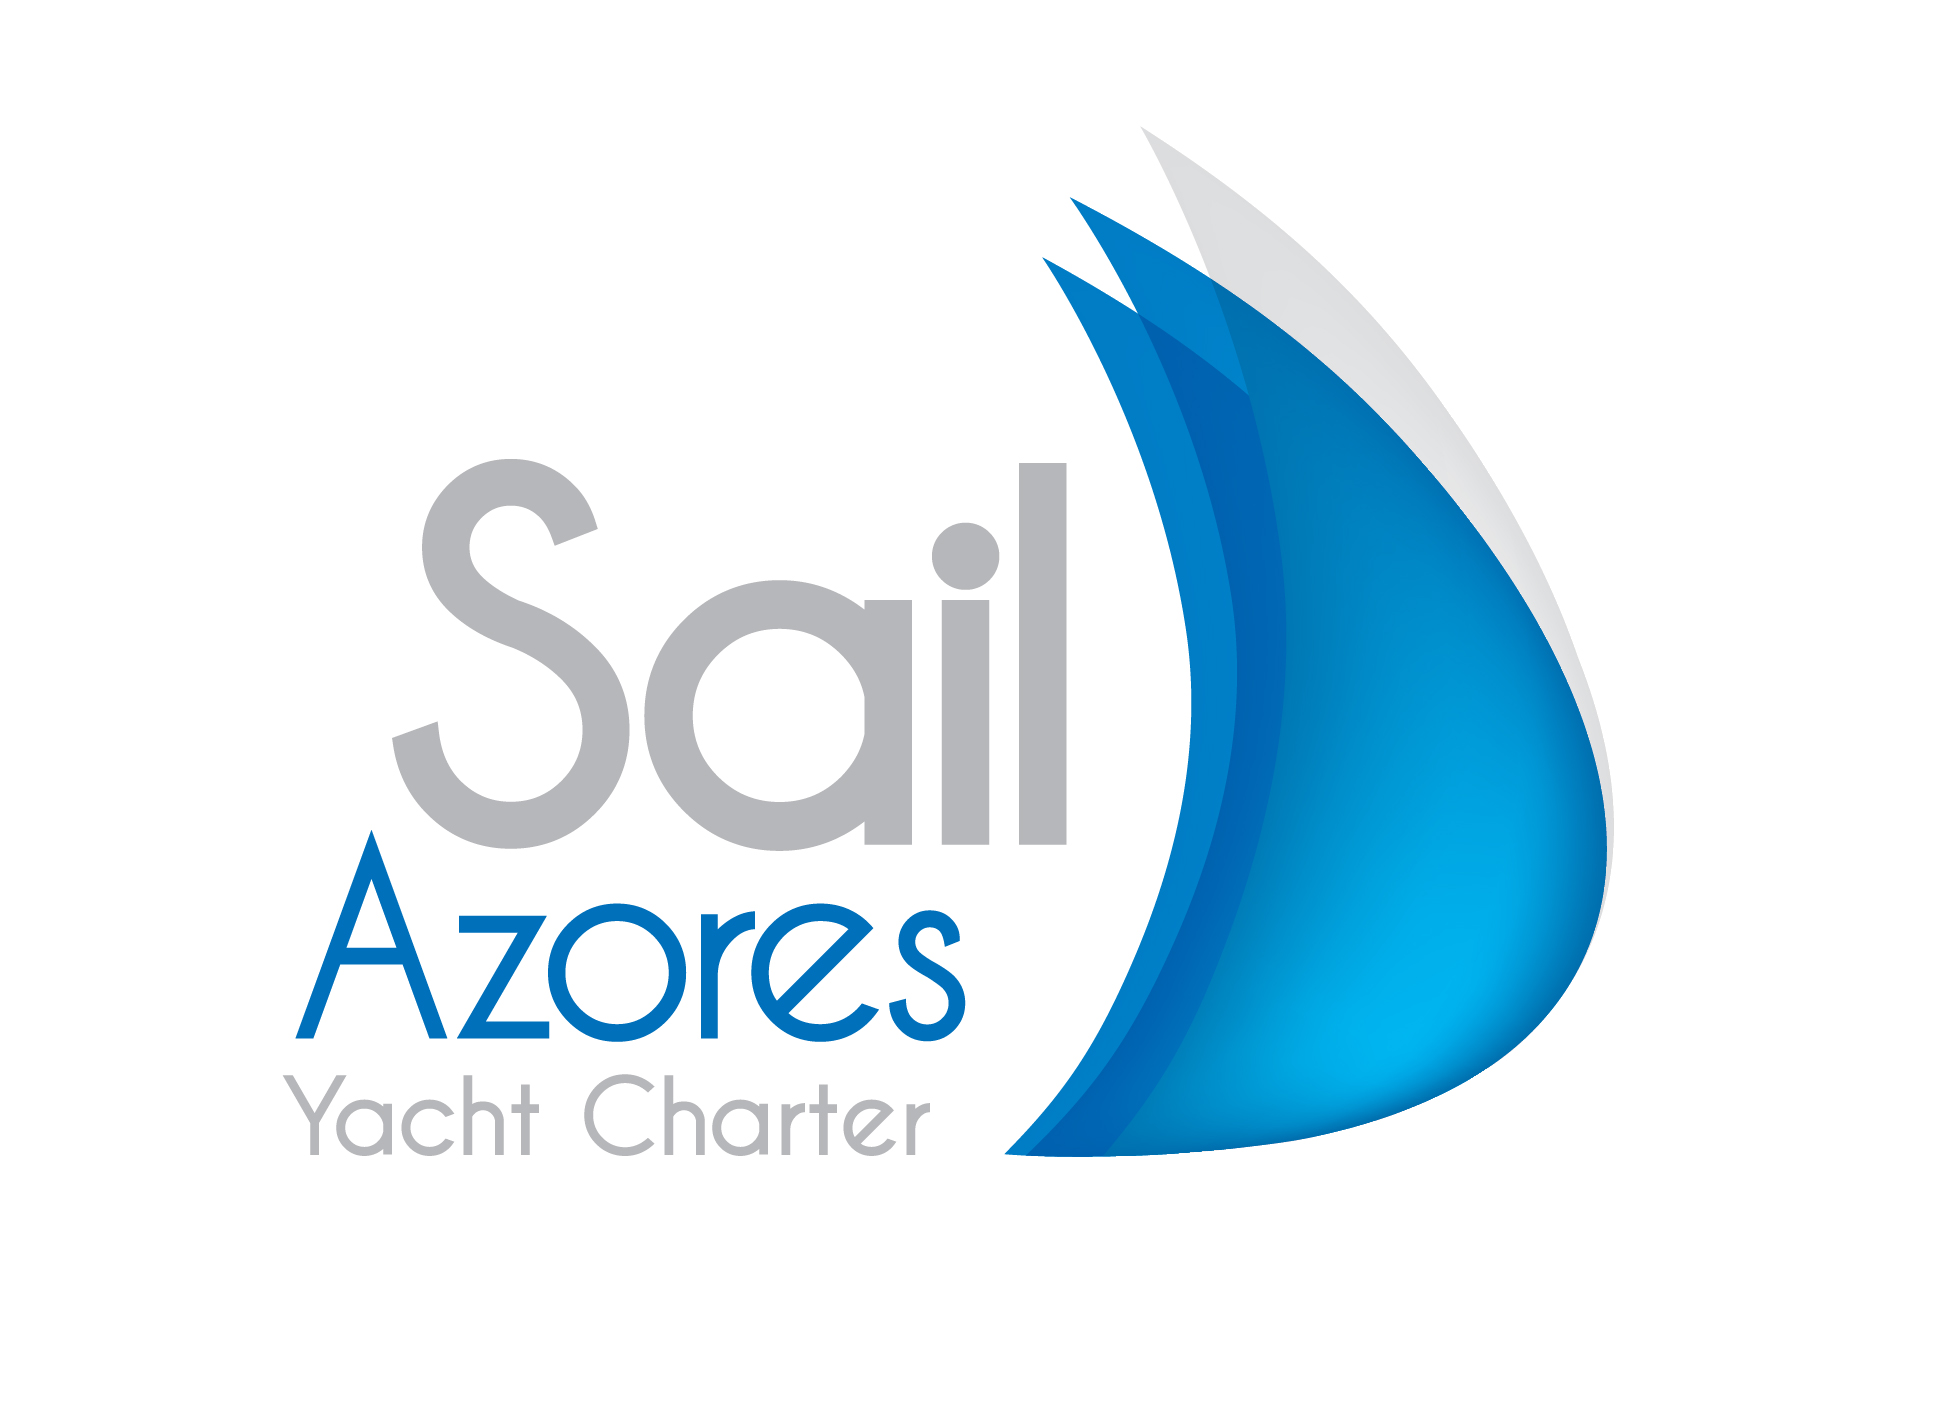 Sailazores Yacht Charter